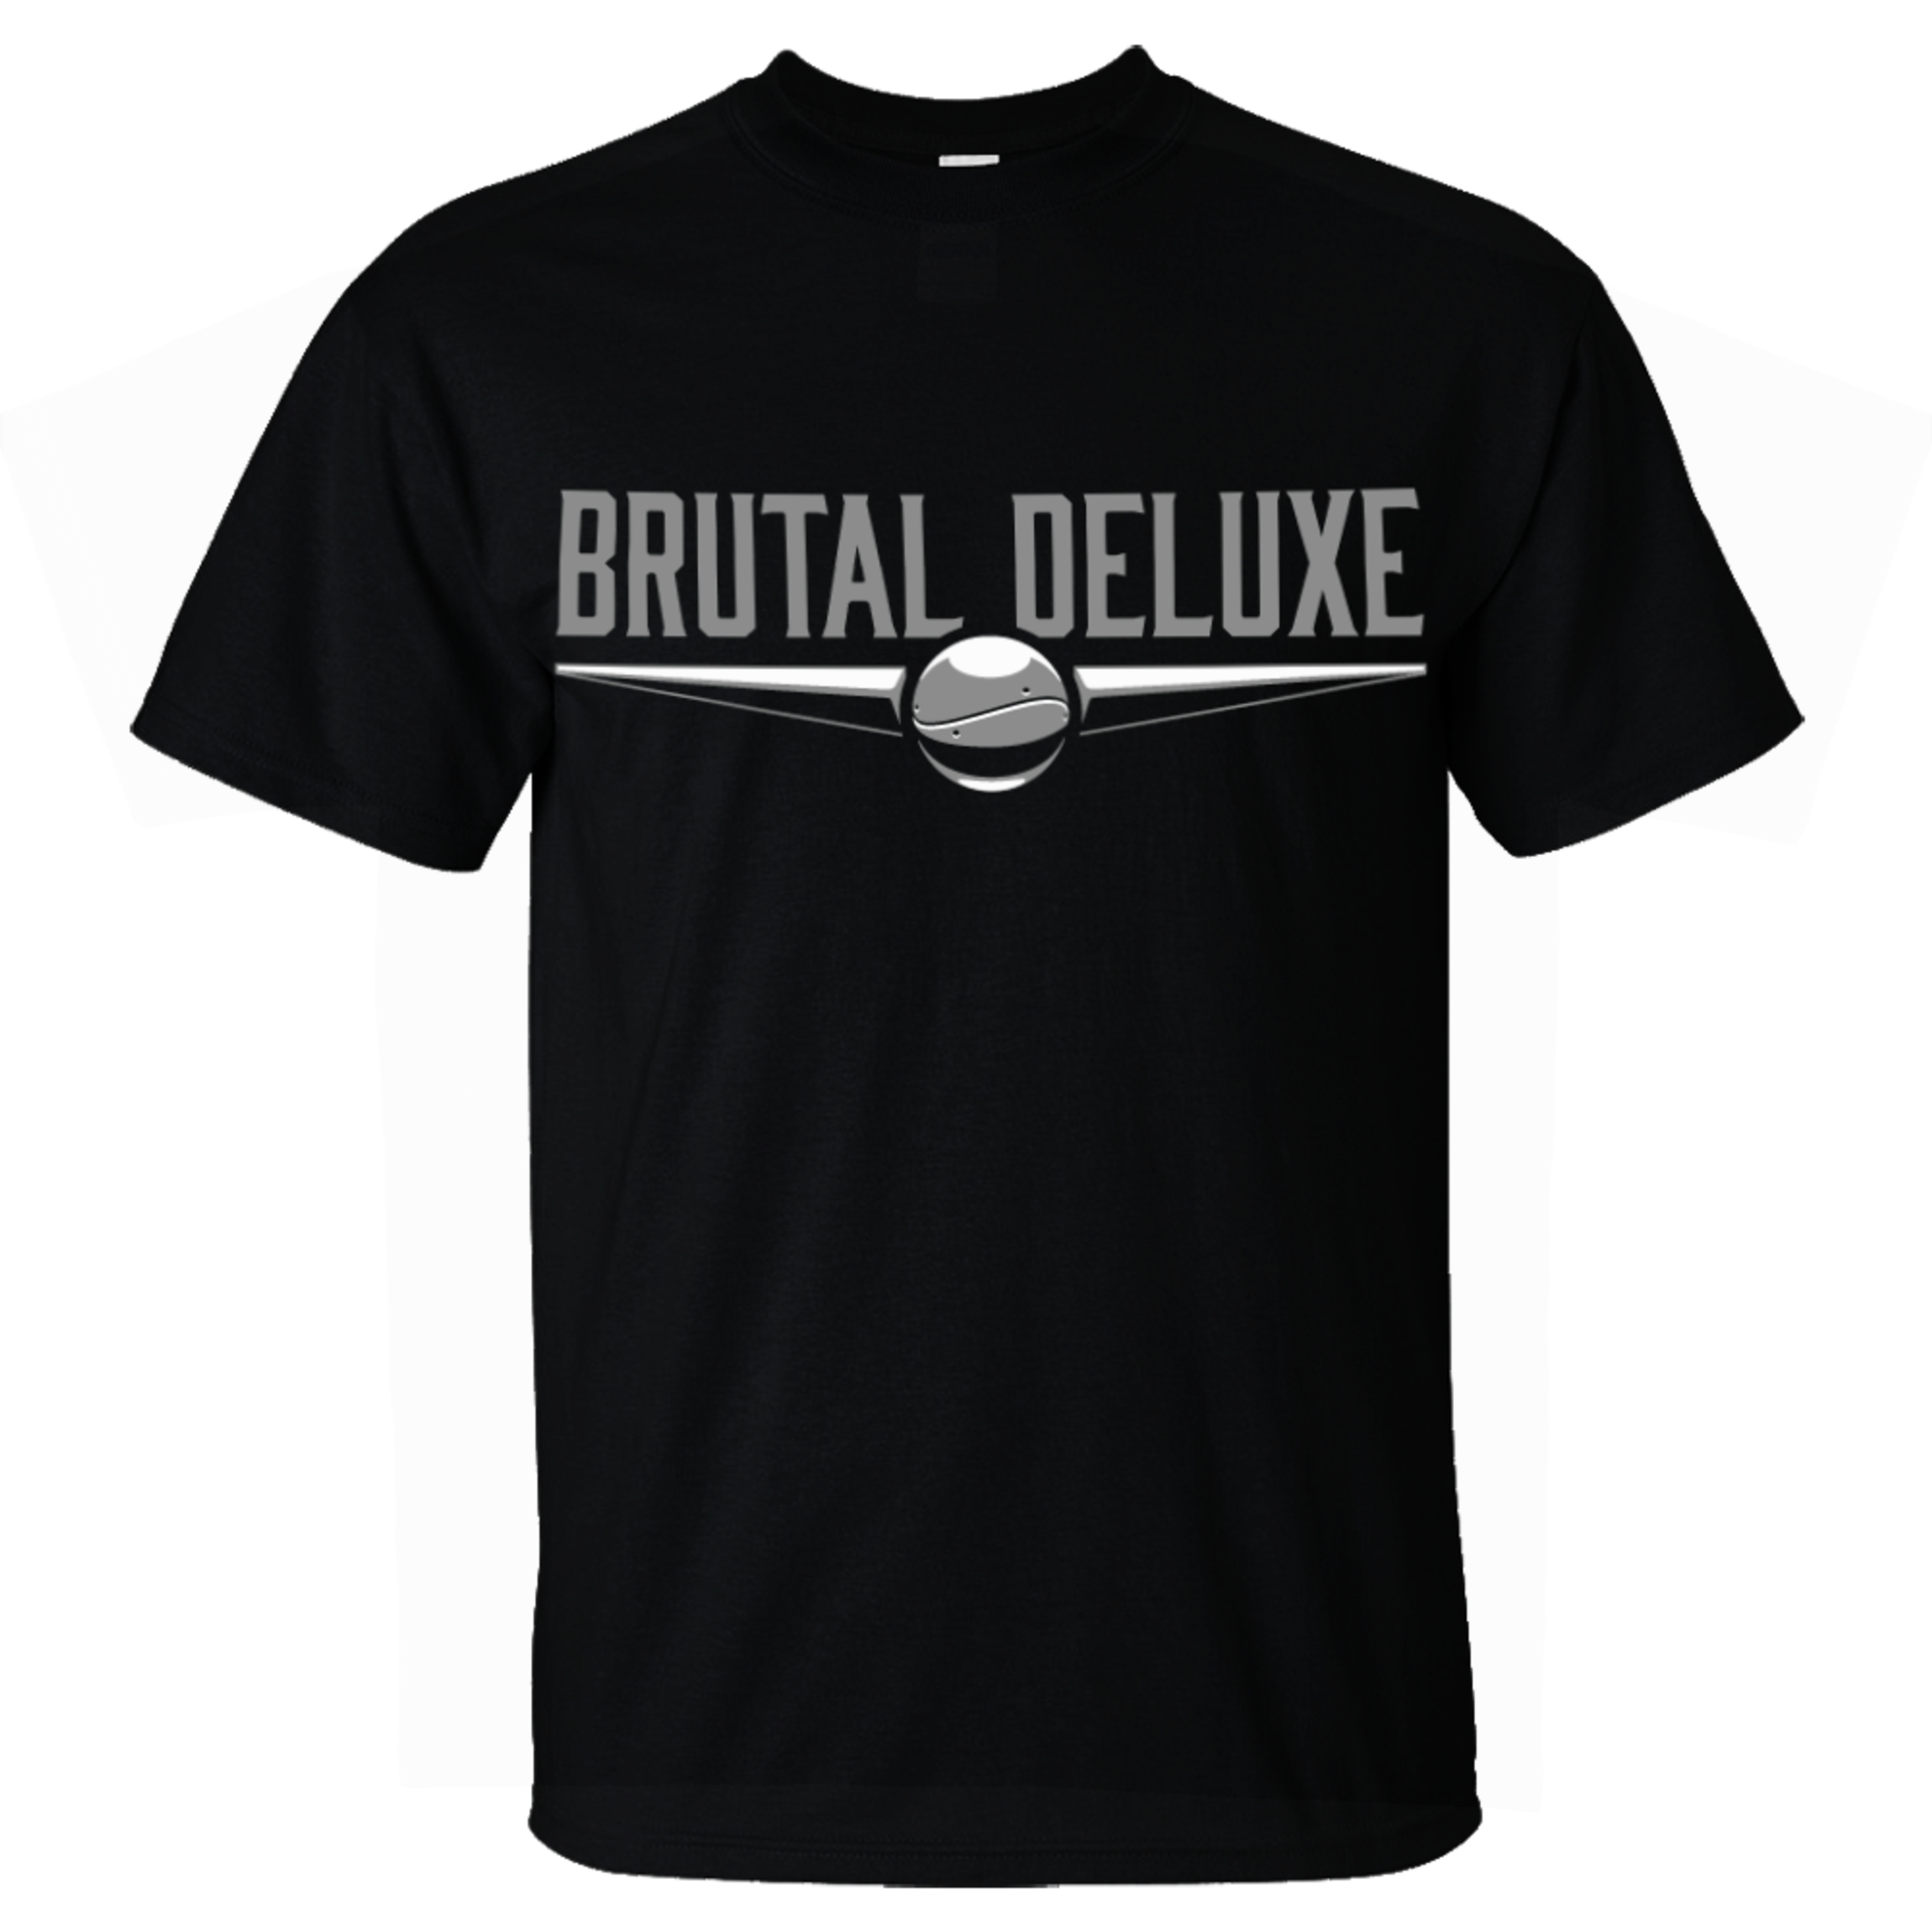 Photograph: Brutal Deluxe T-Shirt